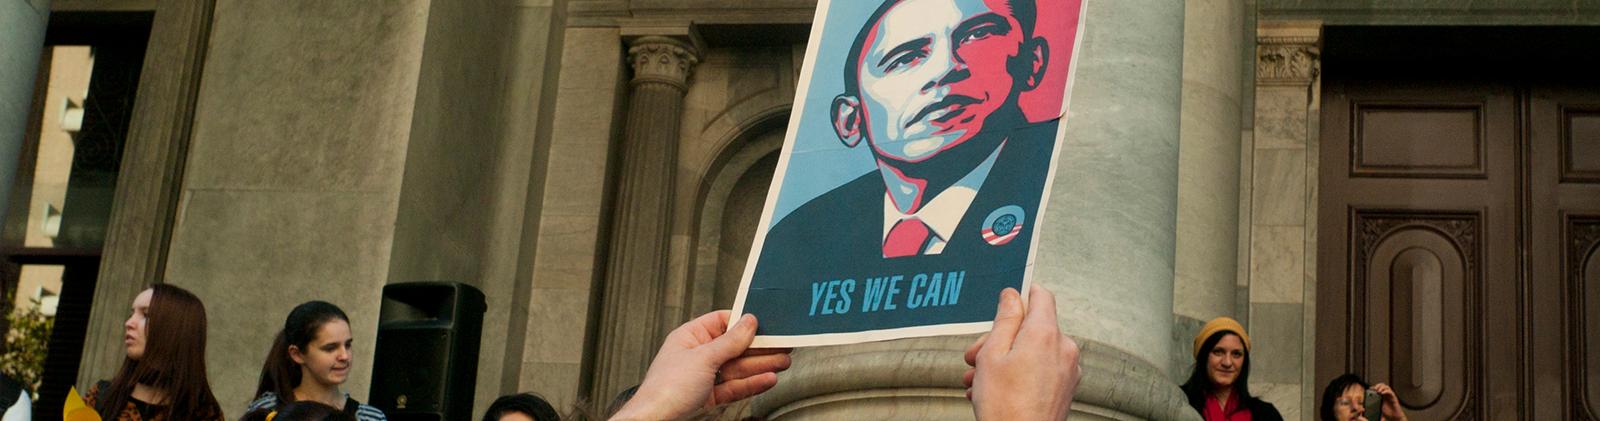 Is Obamacare Dead? Not Quite